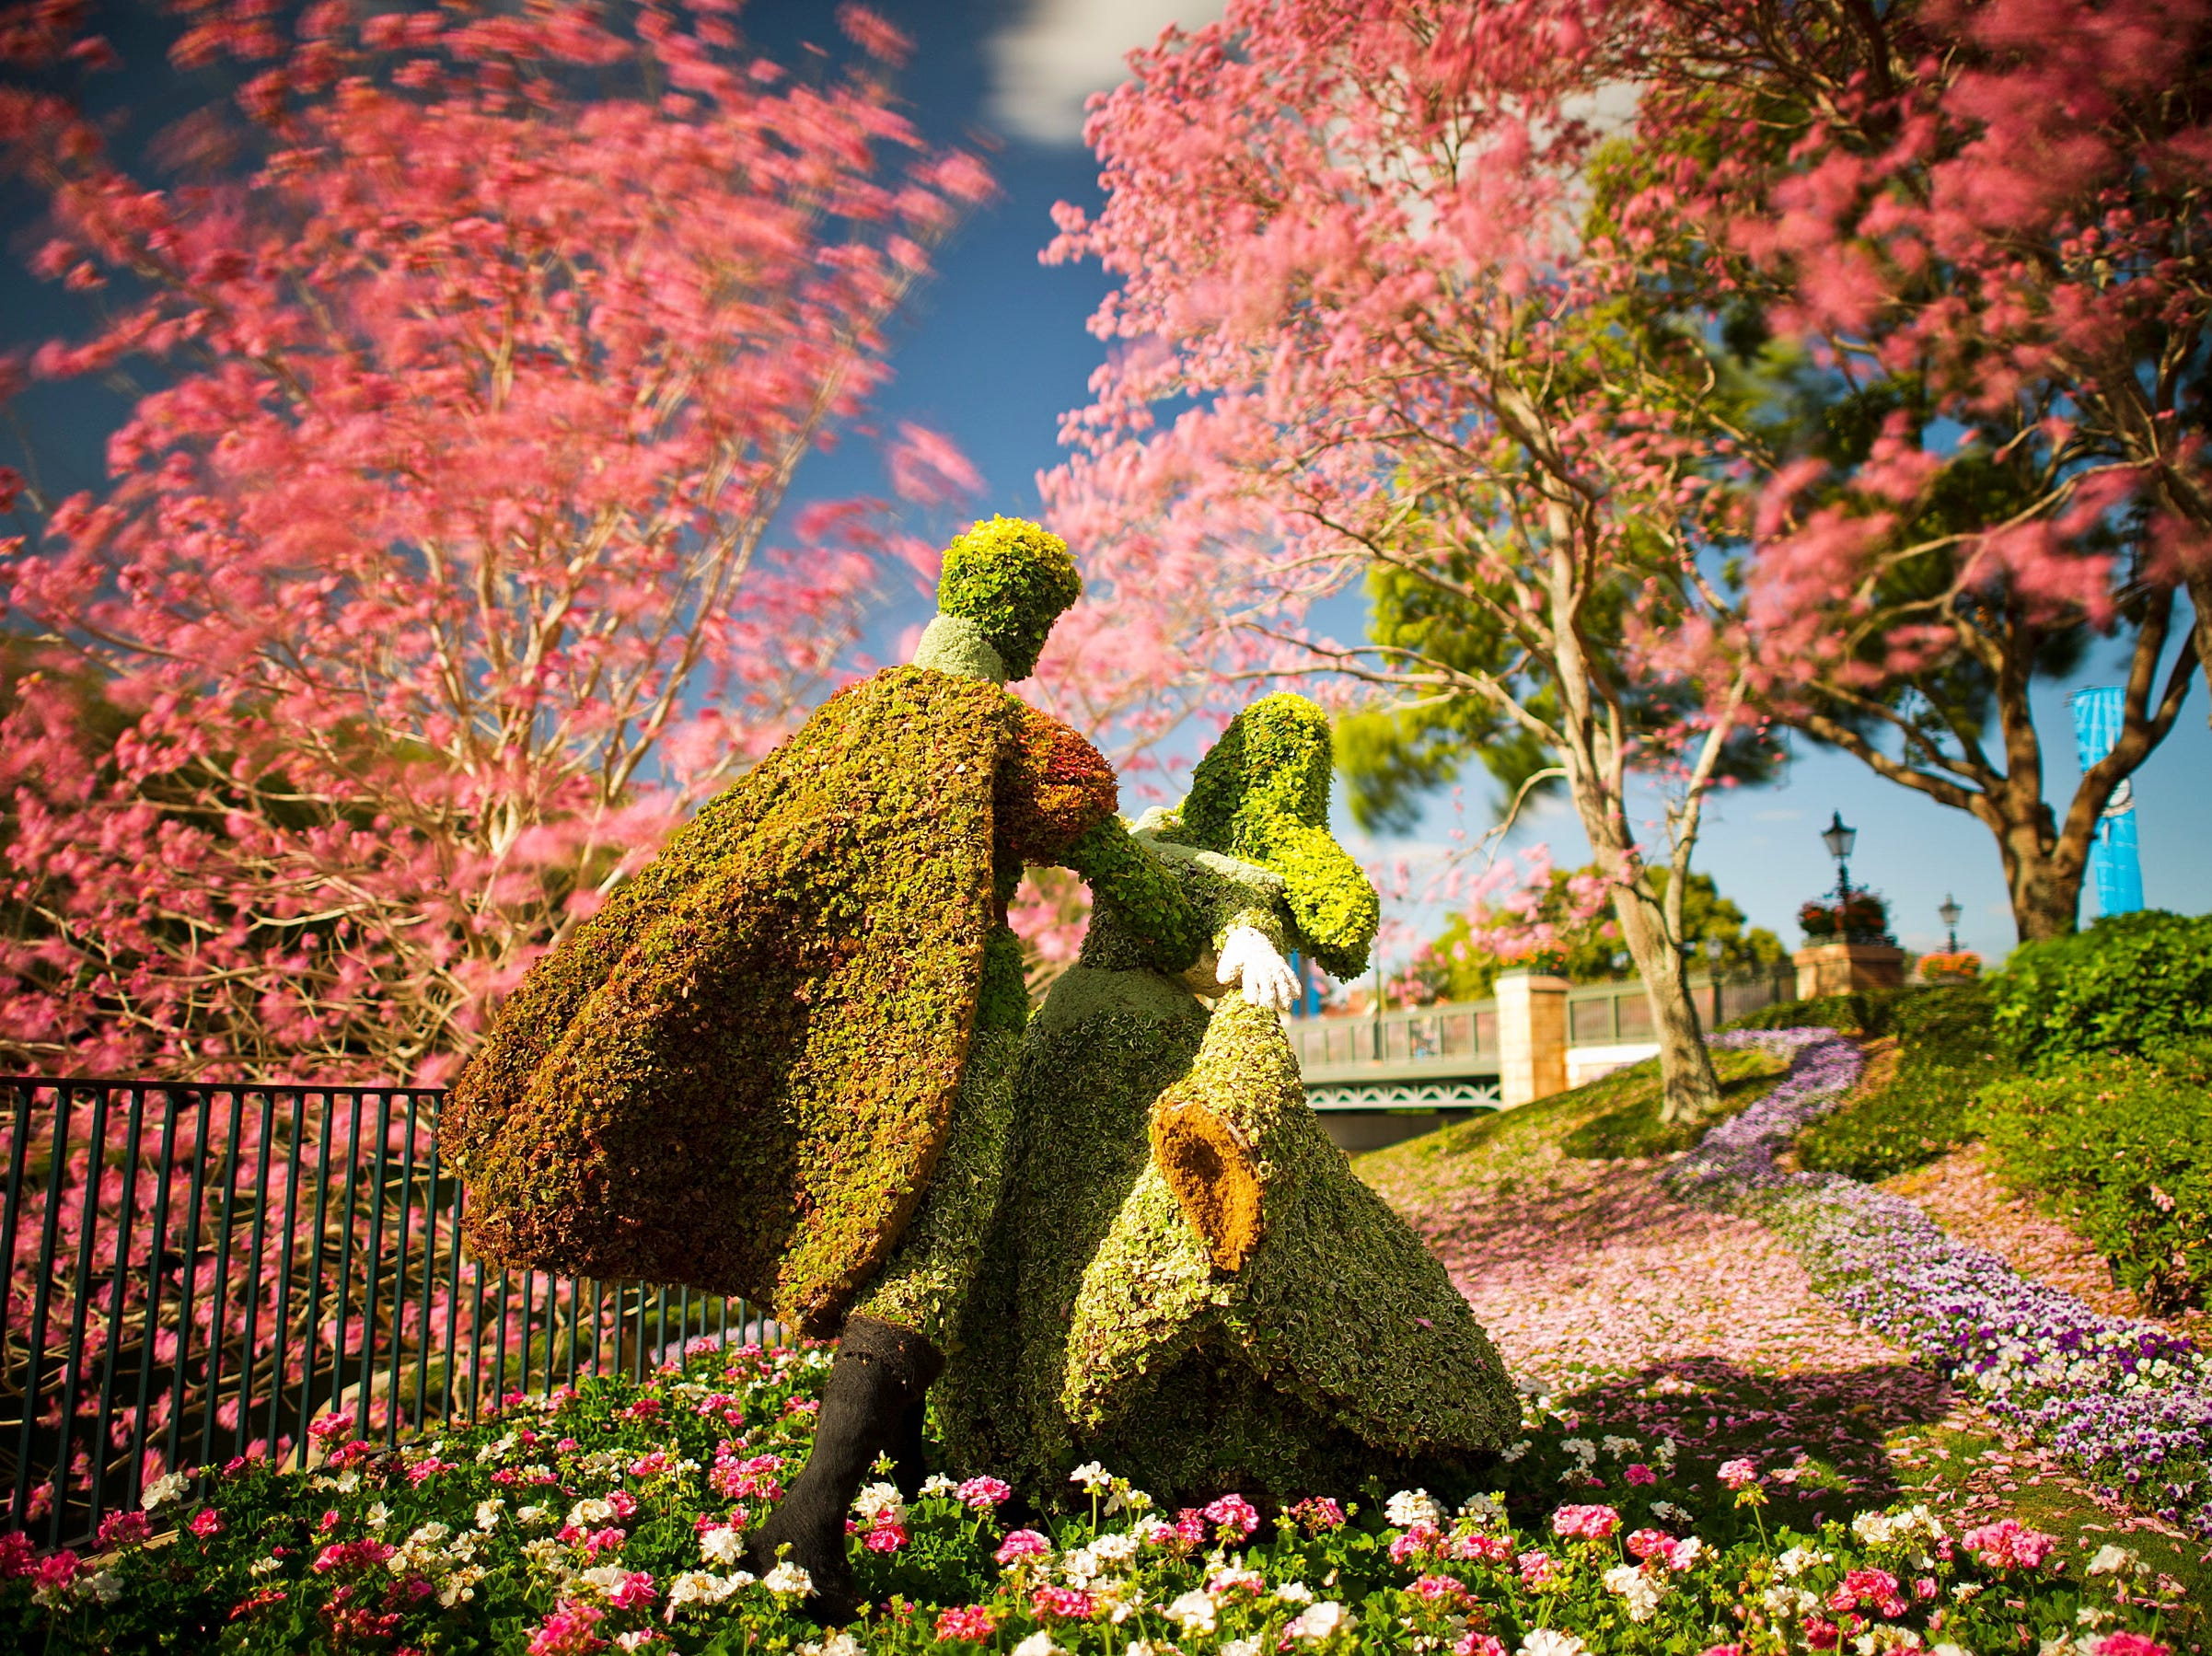 10 GREAT GARDENS- Richly-hued flowers adorn the Epcot International Flower & Garden Festival. The festival, which runs 75 days March 6-May 19, 2013, at Walt Disney World Resort in Lake Buena Vista, Fla., features dozens of character topiaries, stunning floral displays, workshops, the Flower Power concert series and presentations by HGTV personalities - all included in regular Epcot admission.  HANDOUT Photo by Matt Stroshane, Disney [Via MerlinFTP Drop]